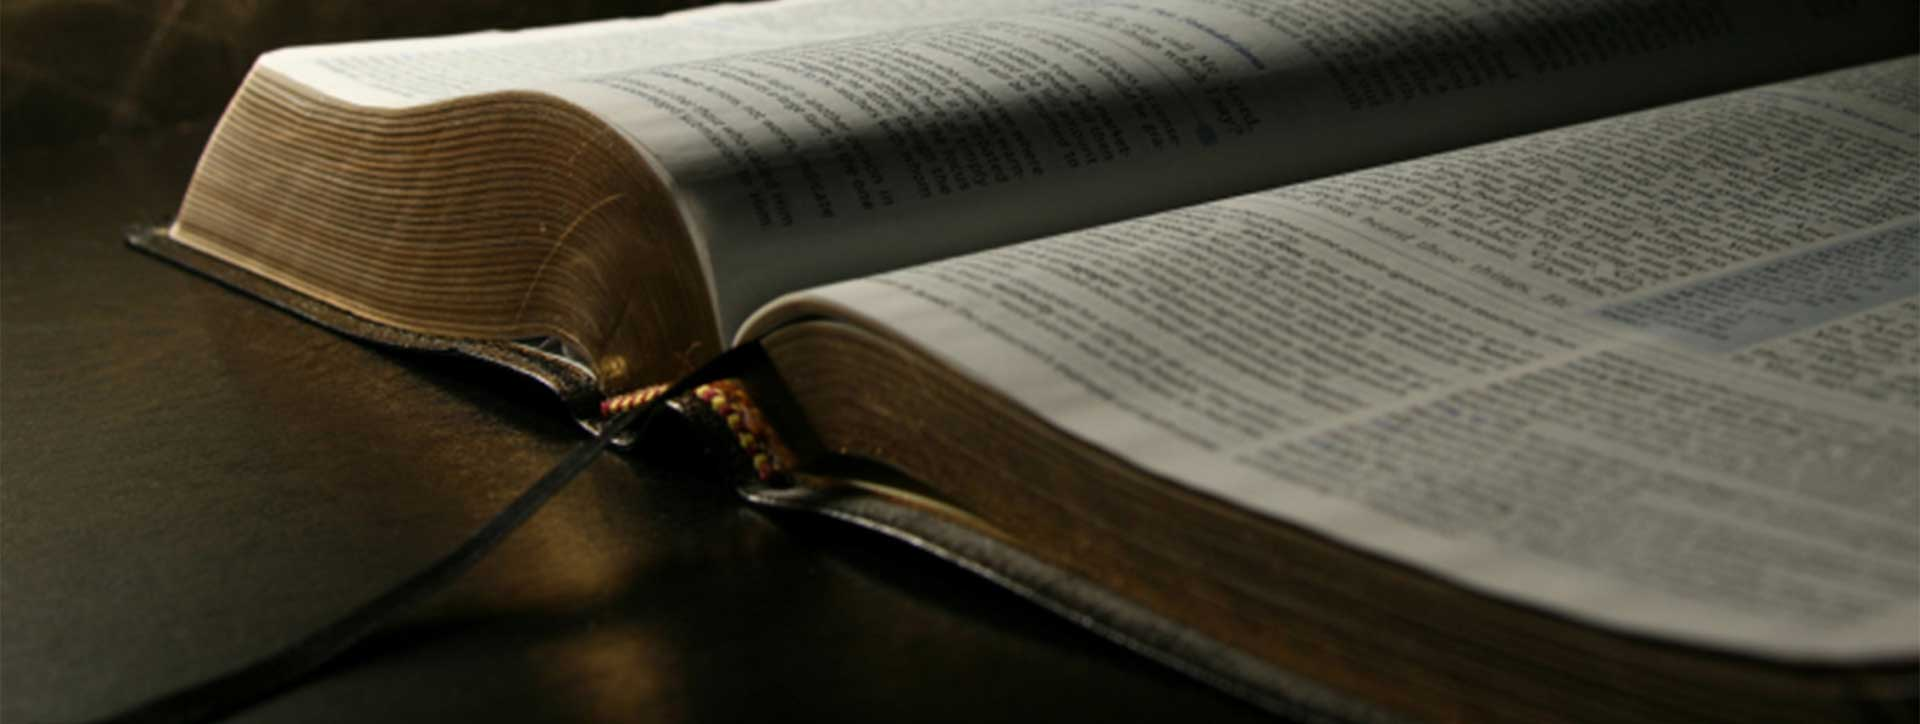 Understanding God's Laws